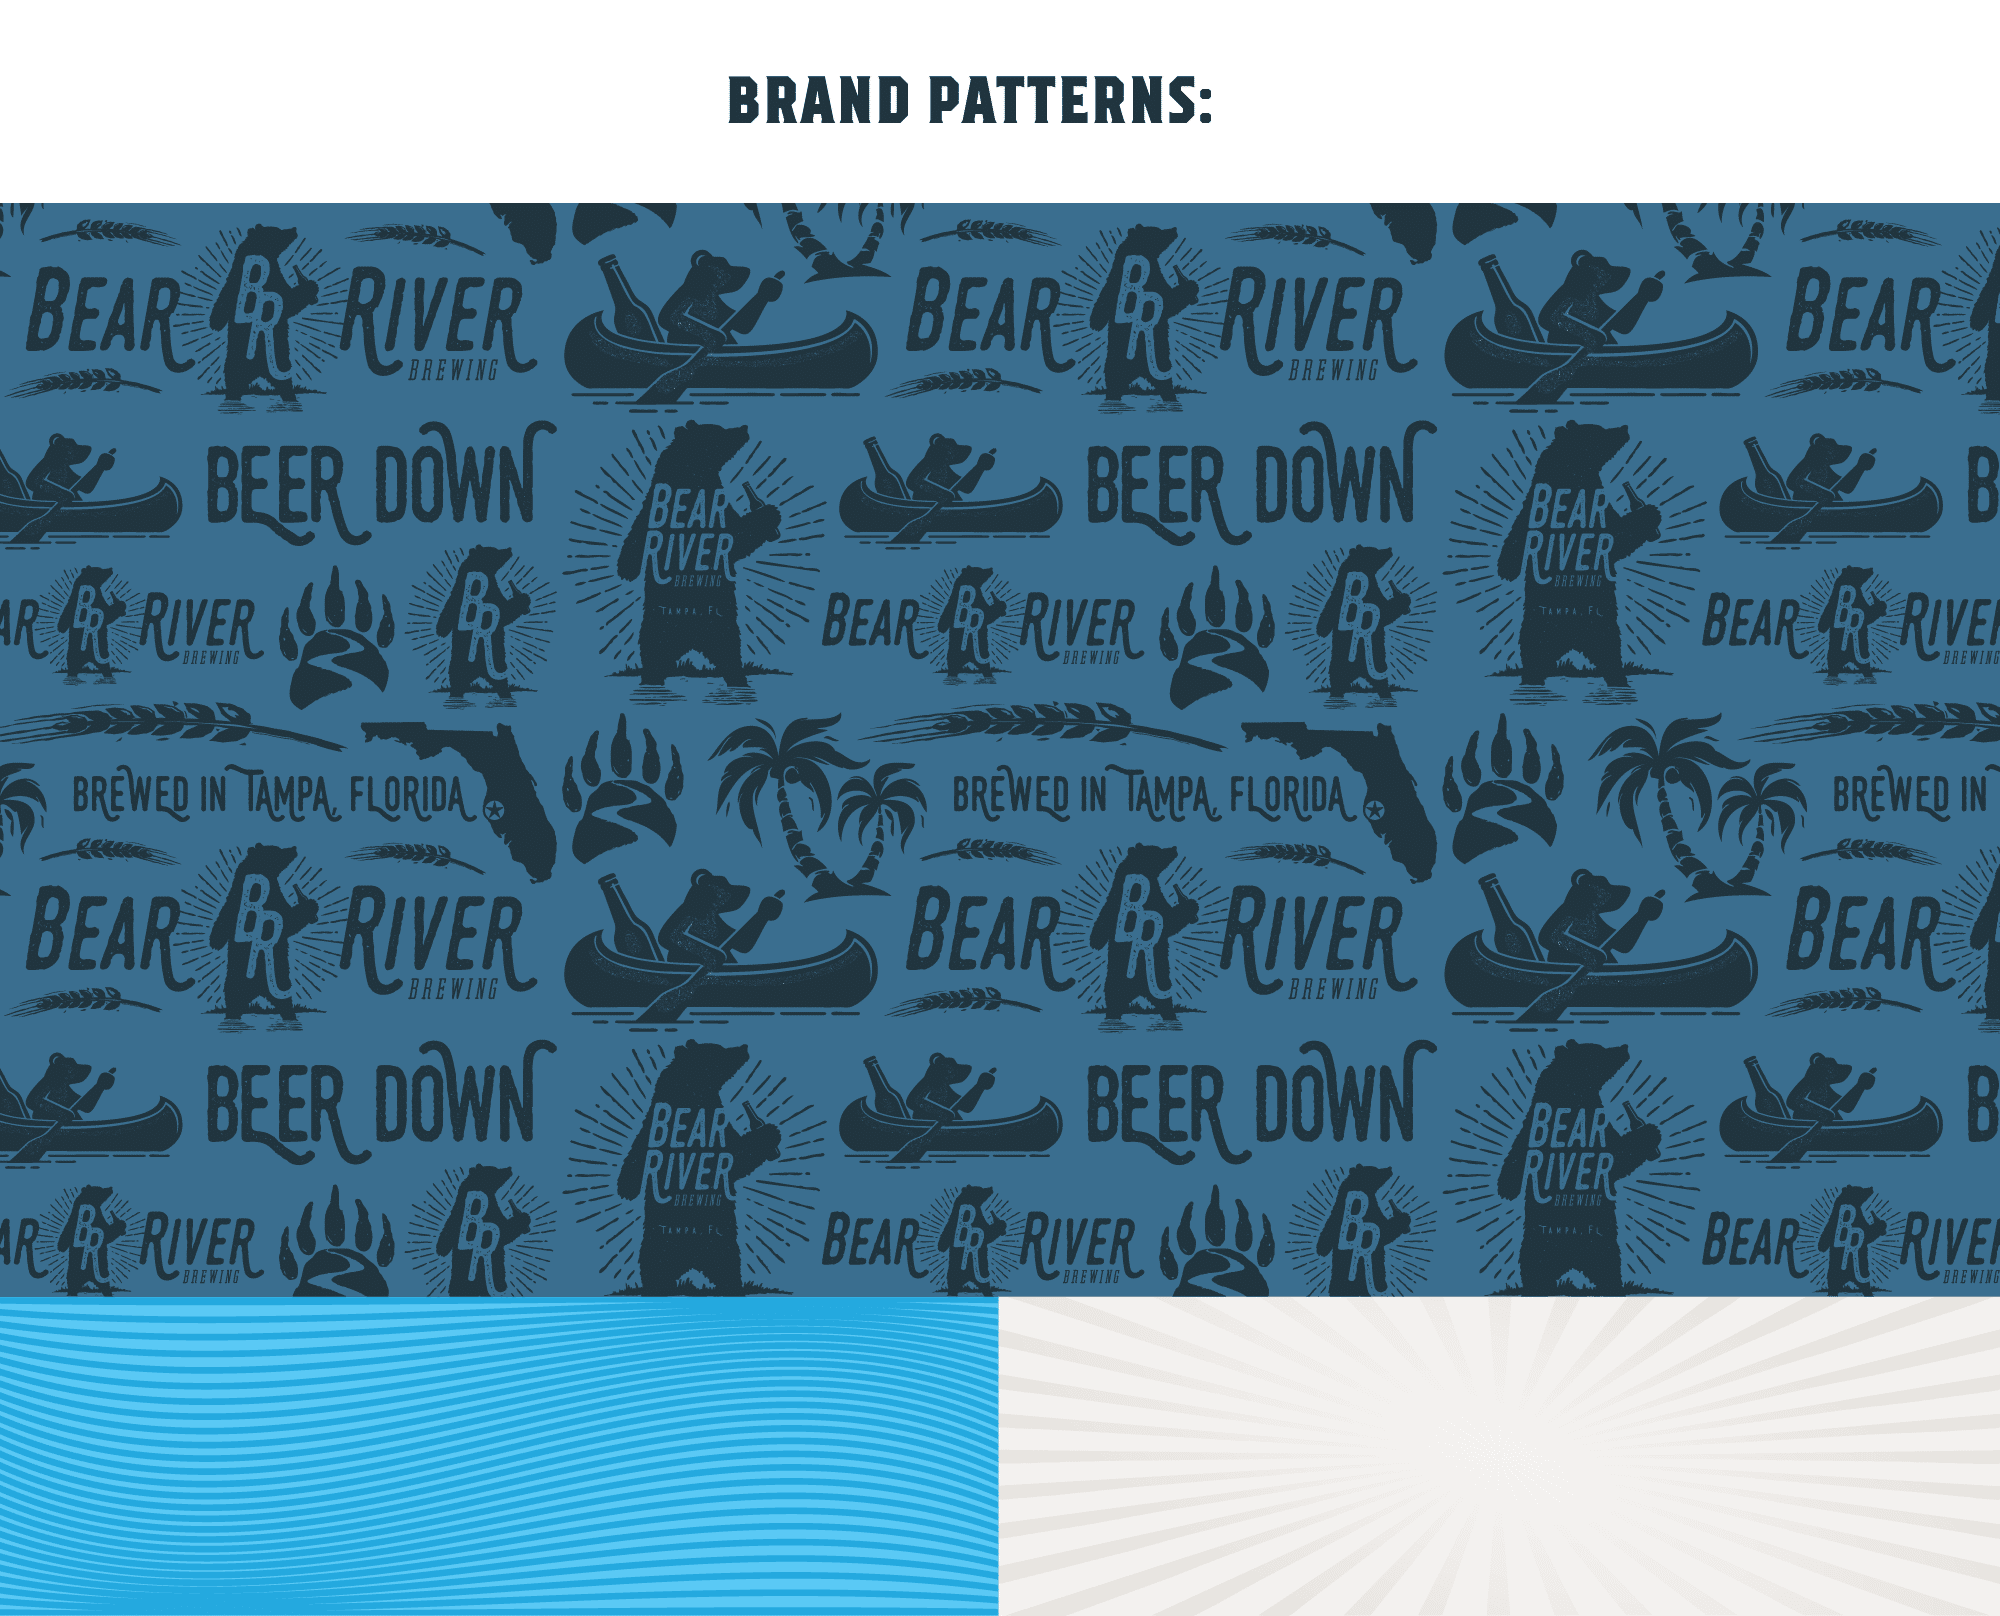 Bear River Brewing brand patterns